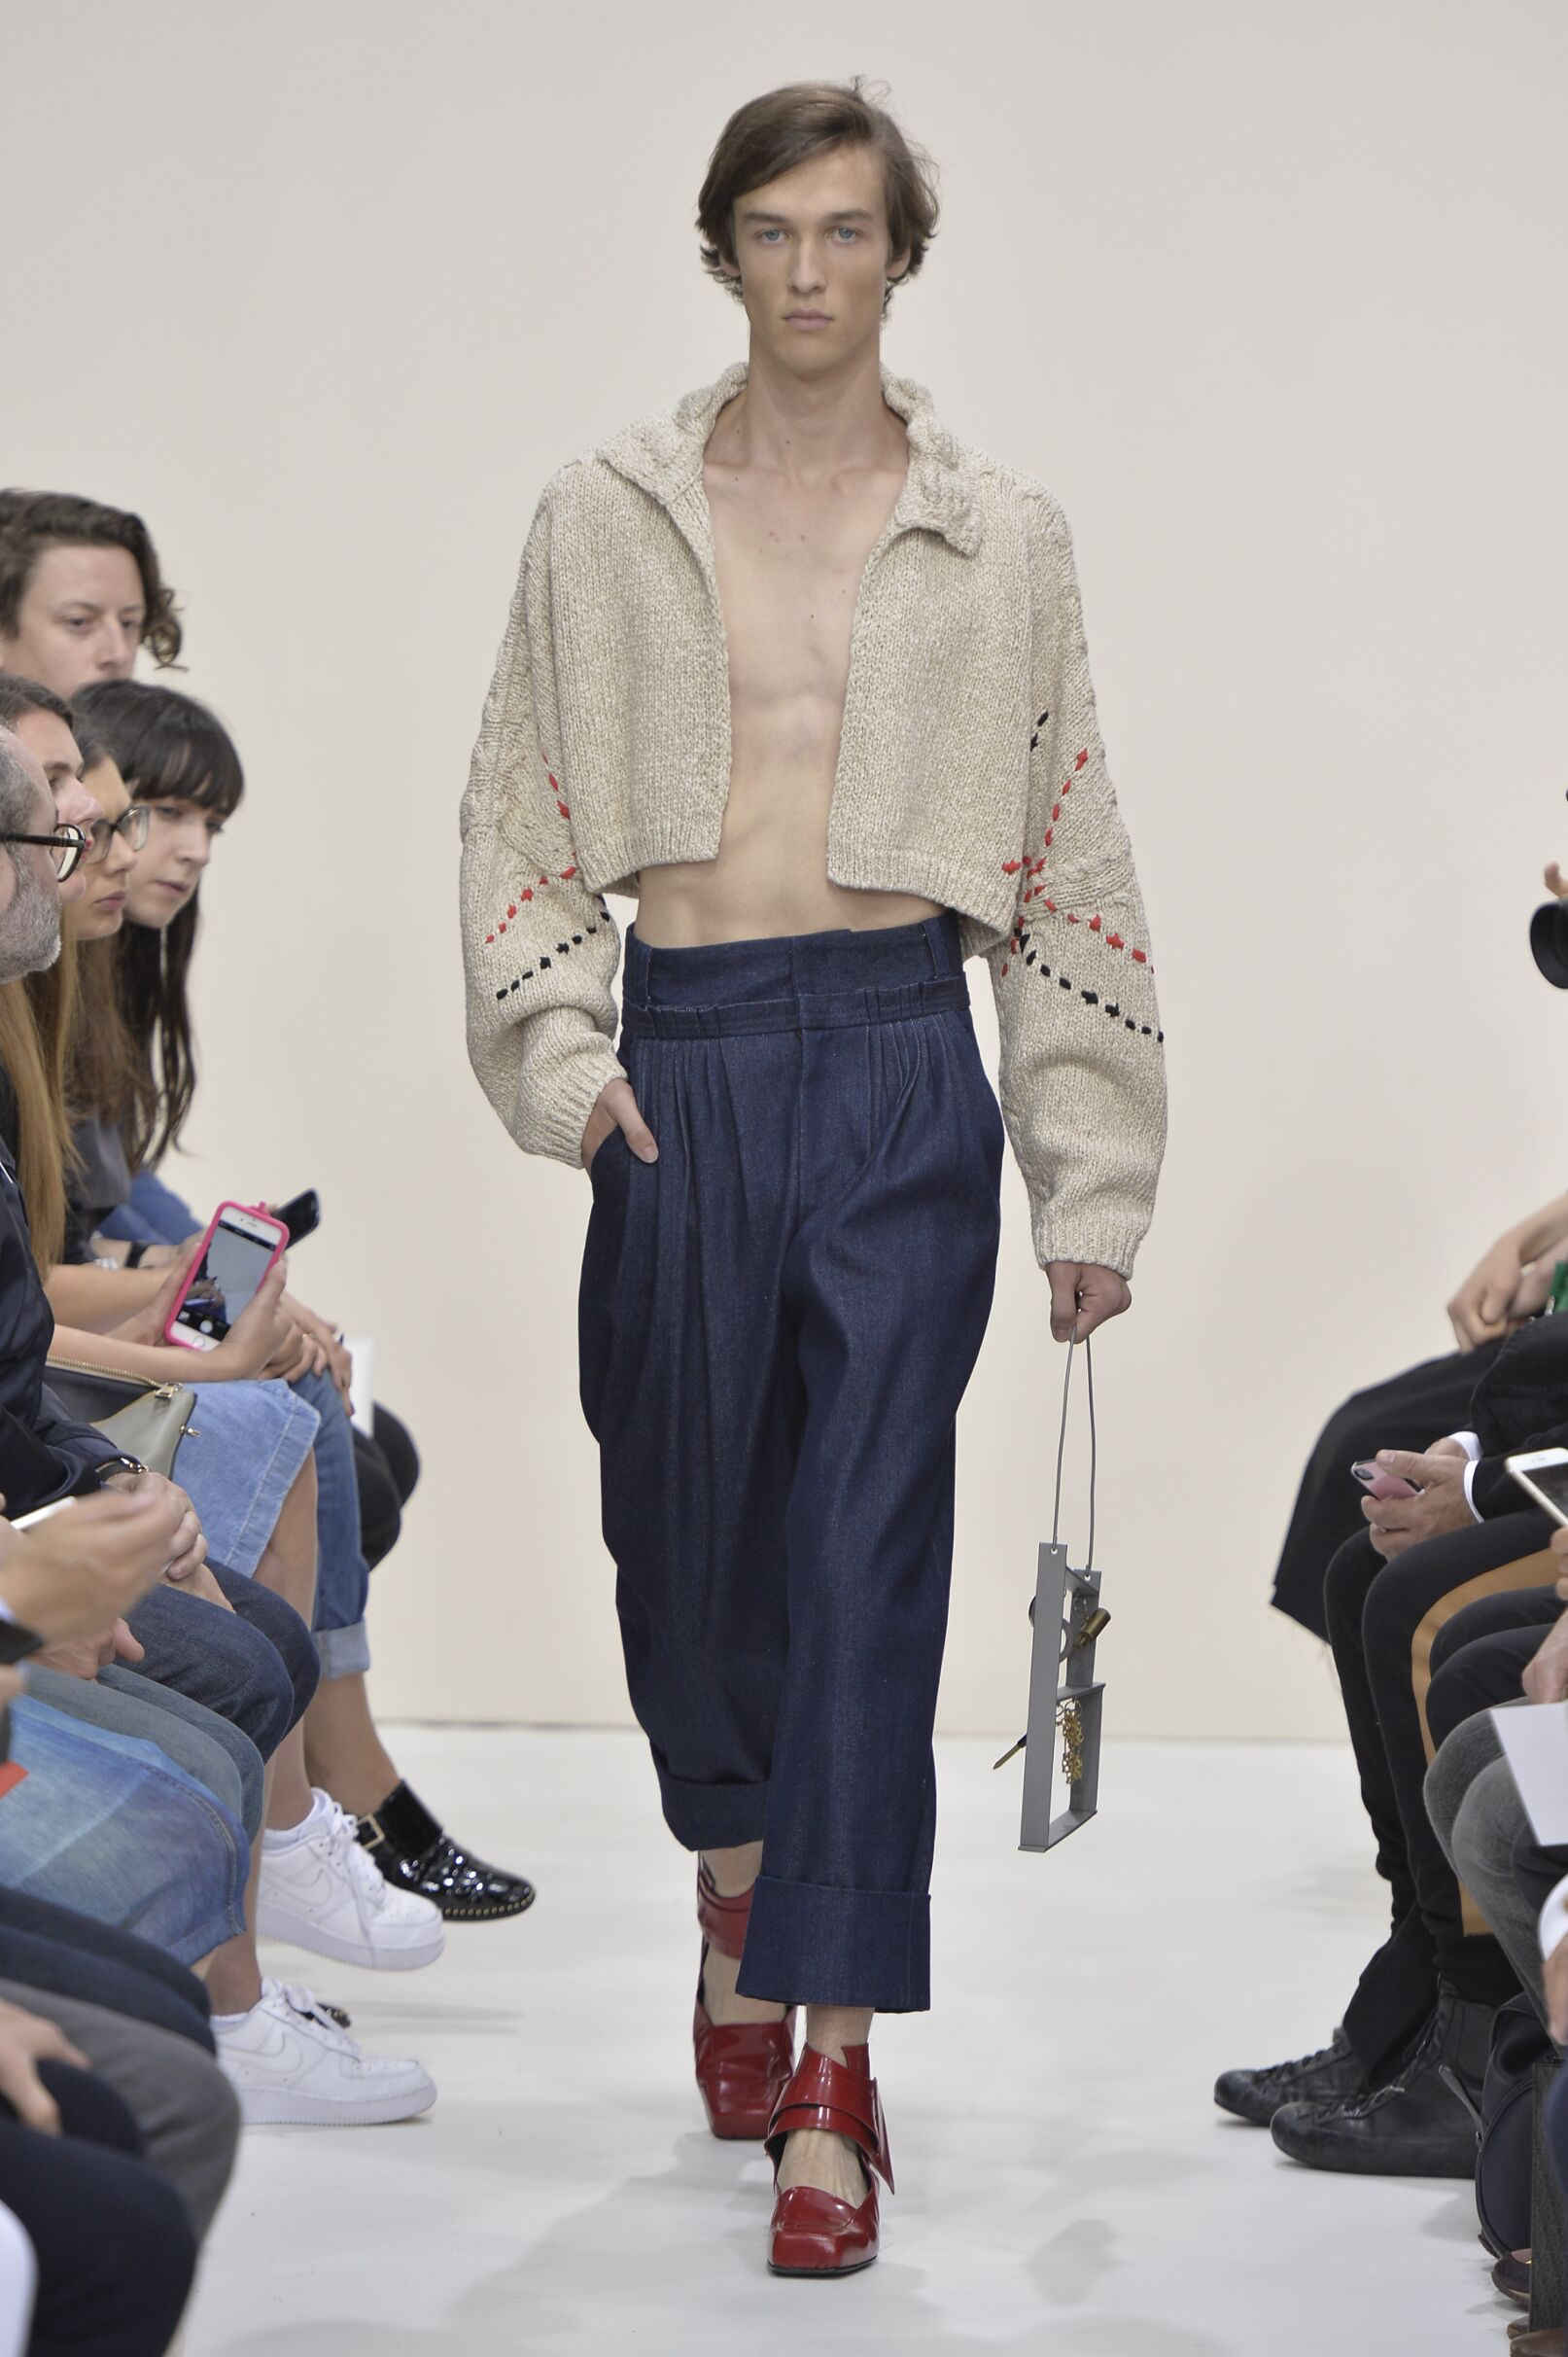 Catwalk J.W. Anderson Menswear Collection Summer 2016